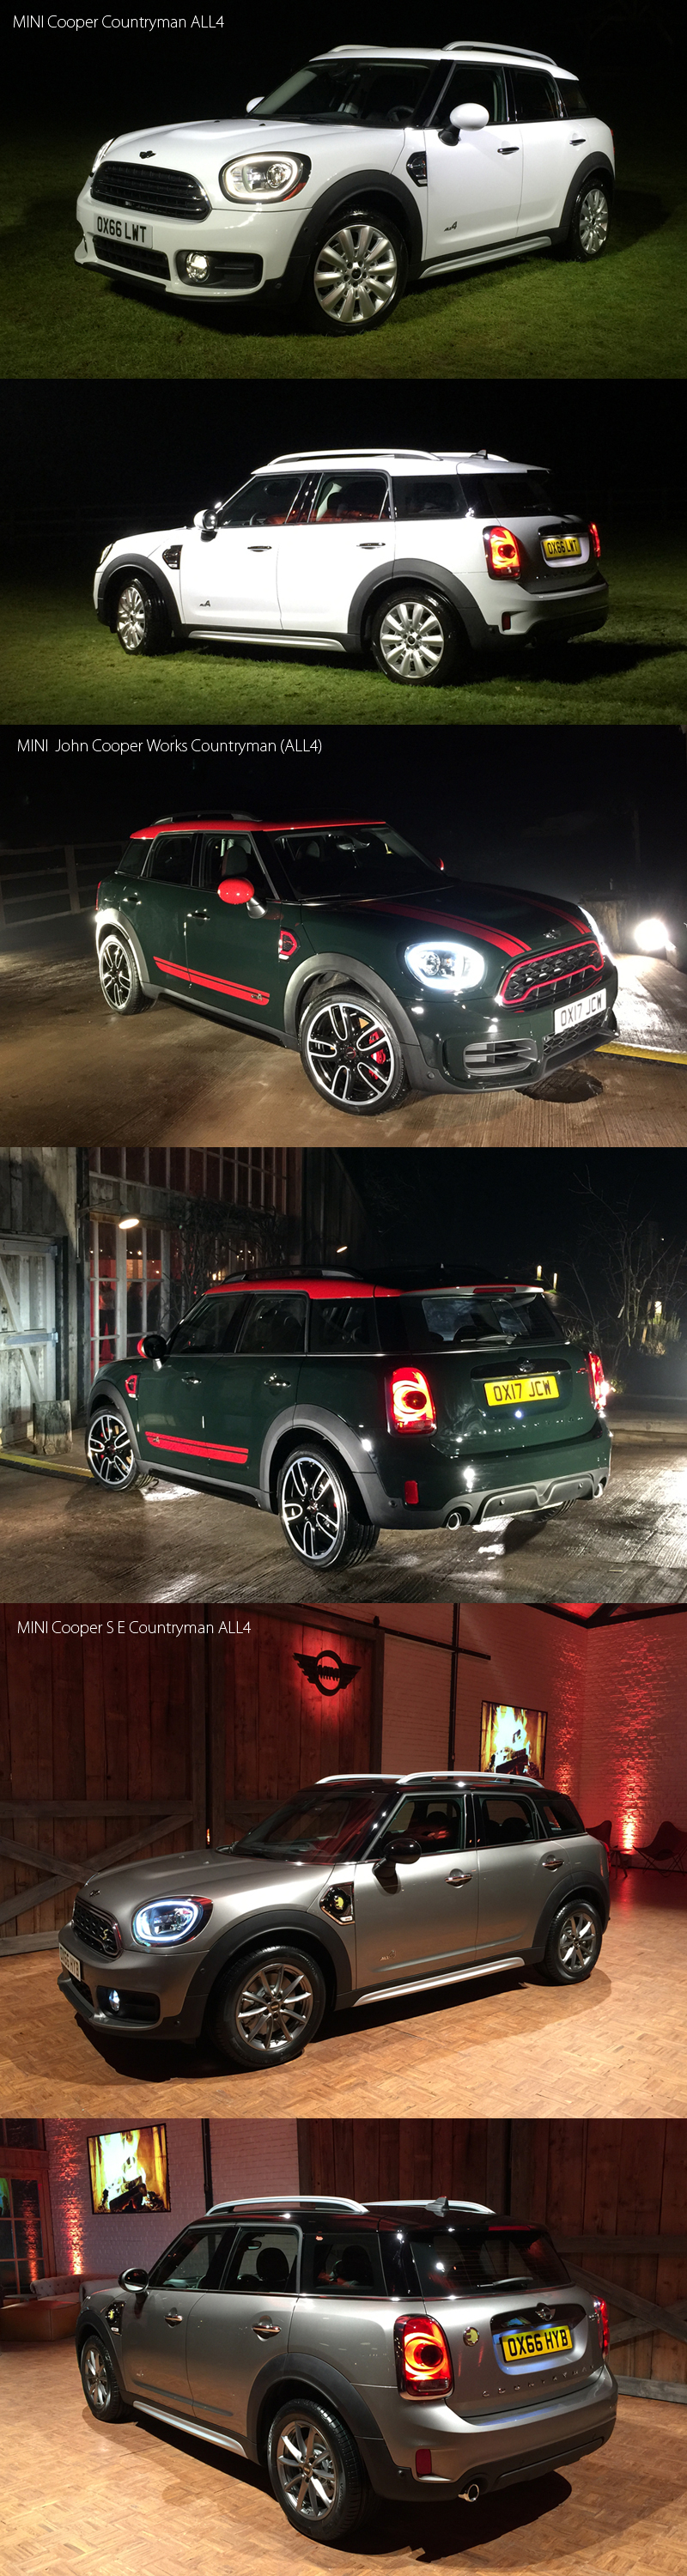 2017_01_23_MINI_Countryman_11